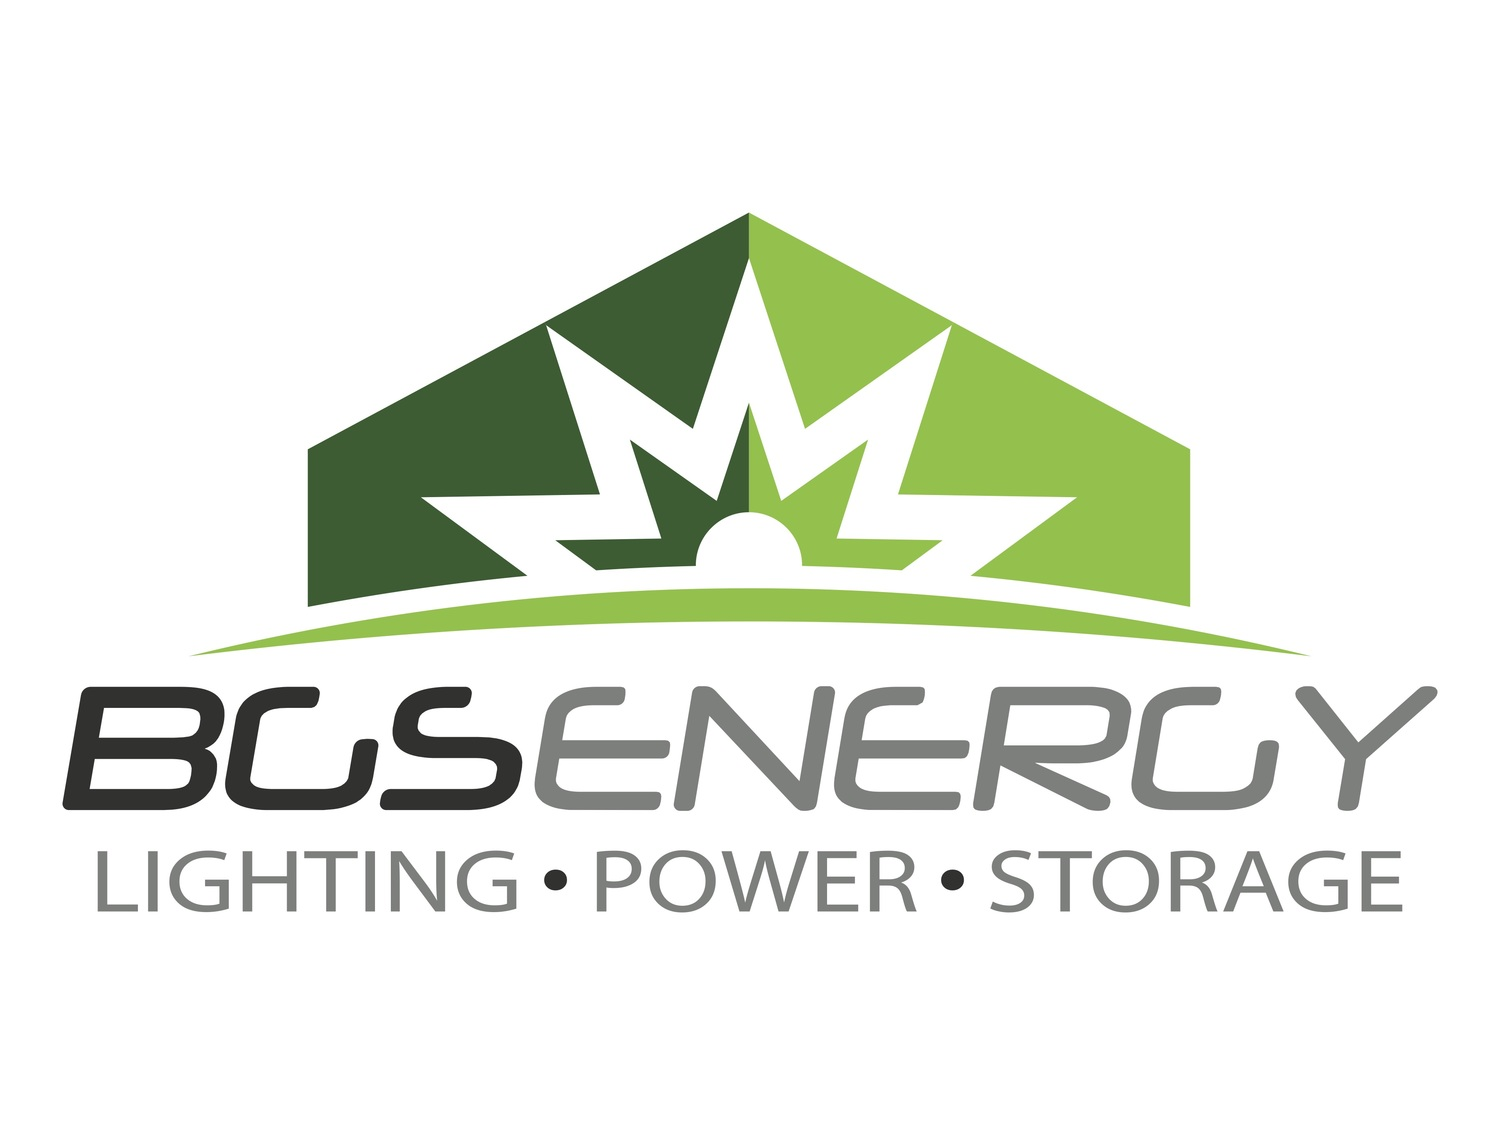 LED. Onsite Energy. Storage